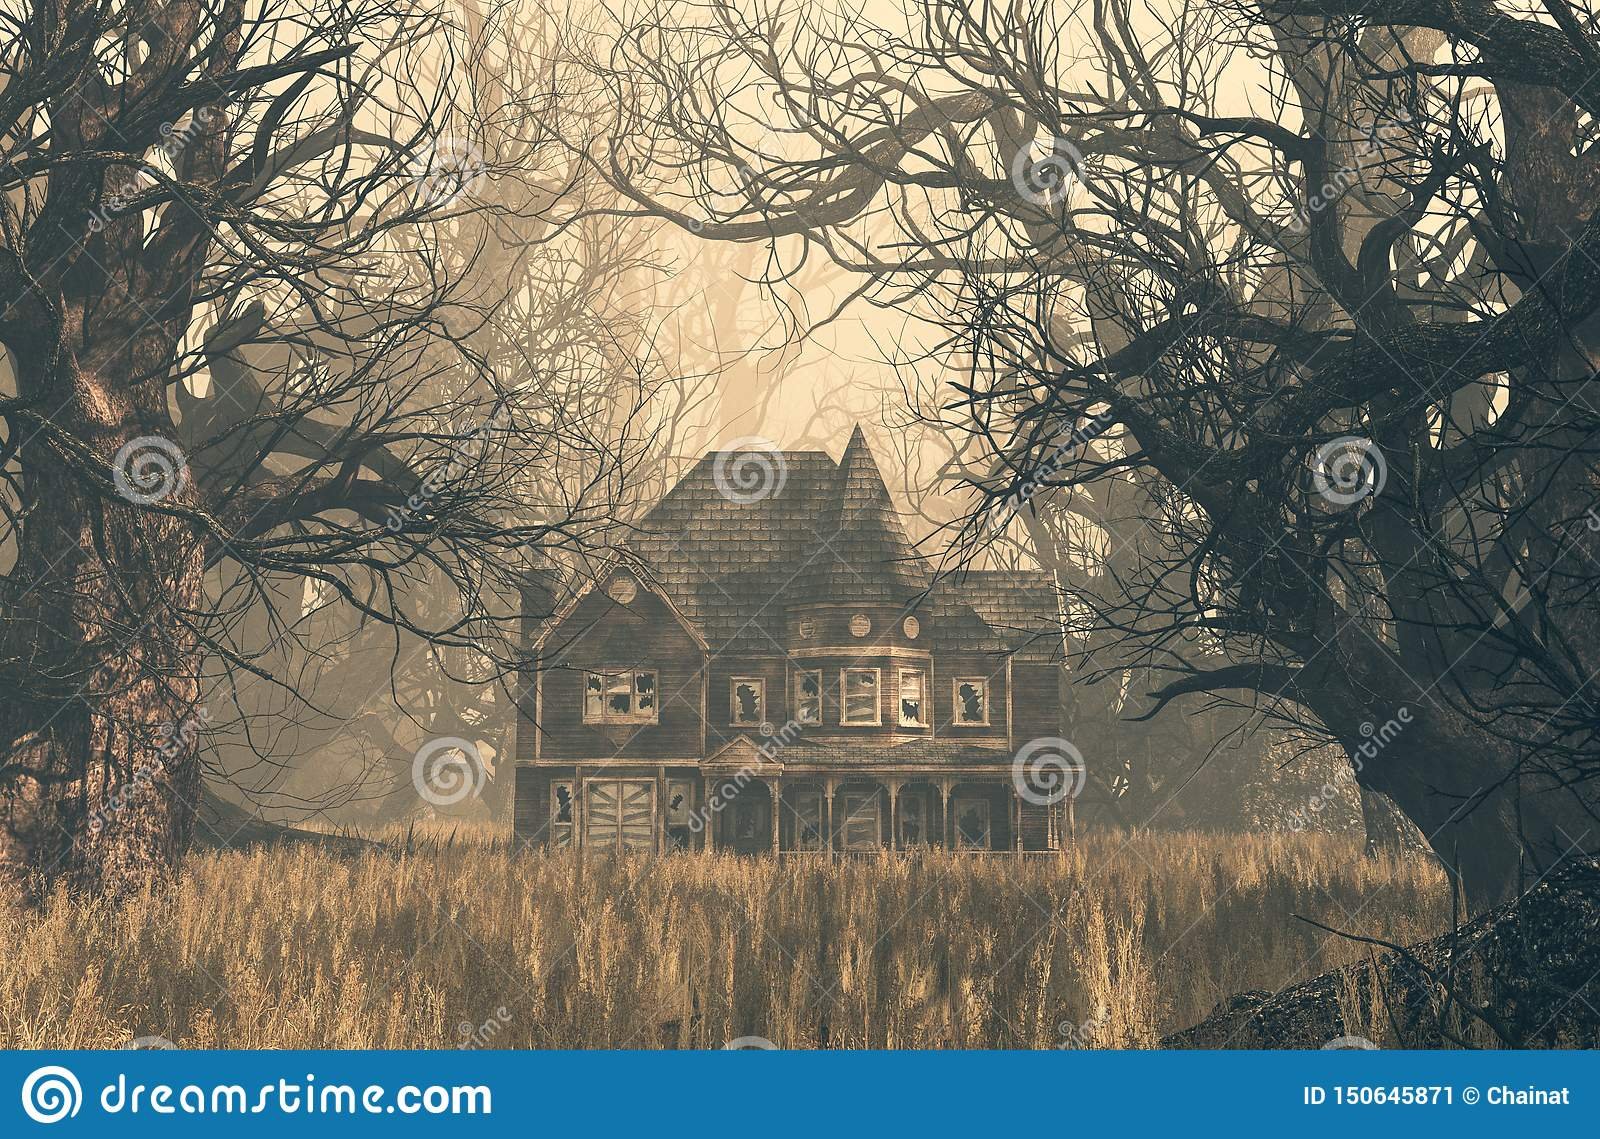 Haunted House Scene In Creepy Forest Stock Illustration